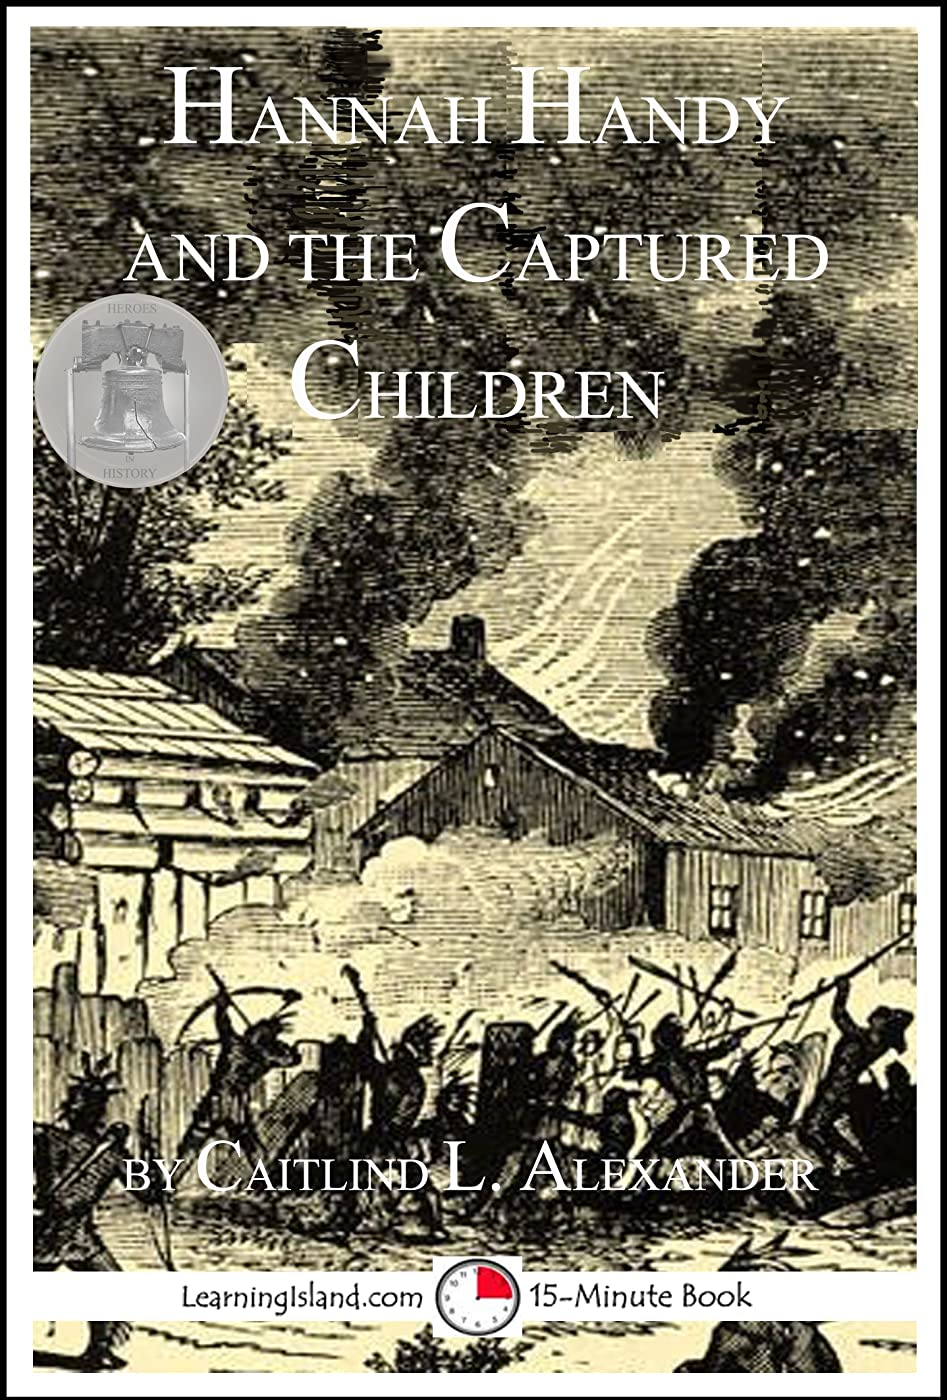 Hannah Handy and the Captured Children : A 15-Minute Heroes in History Book (15-Minute Books 1219) (English Edition)